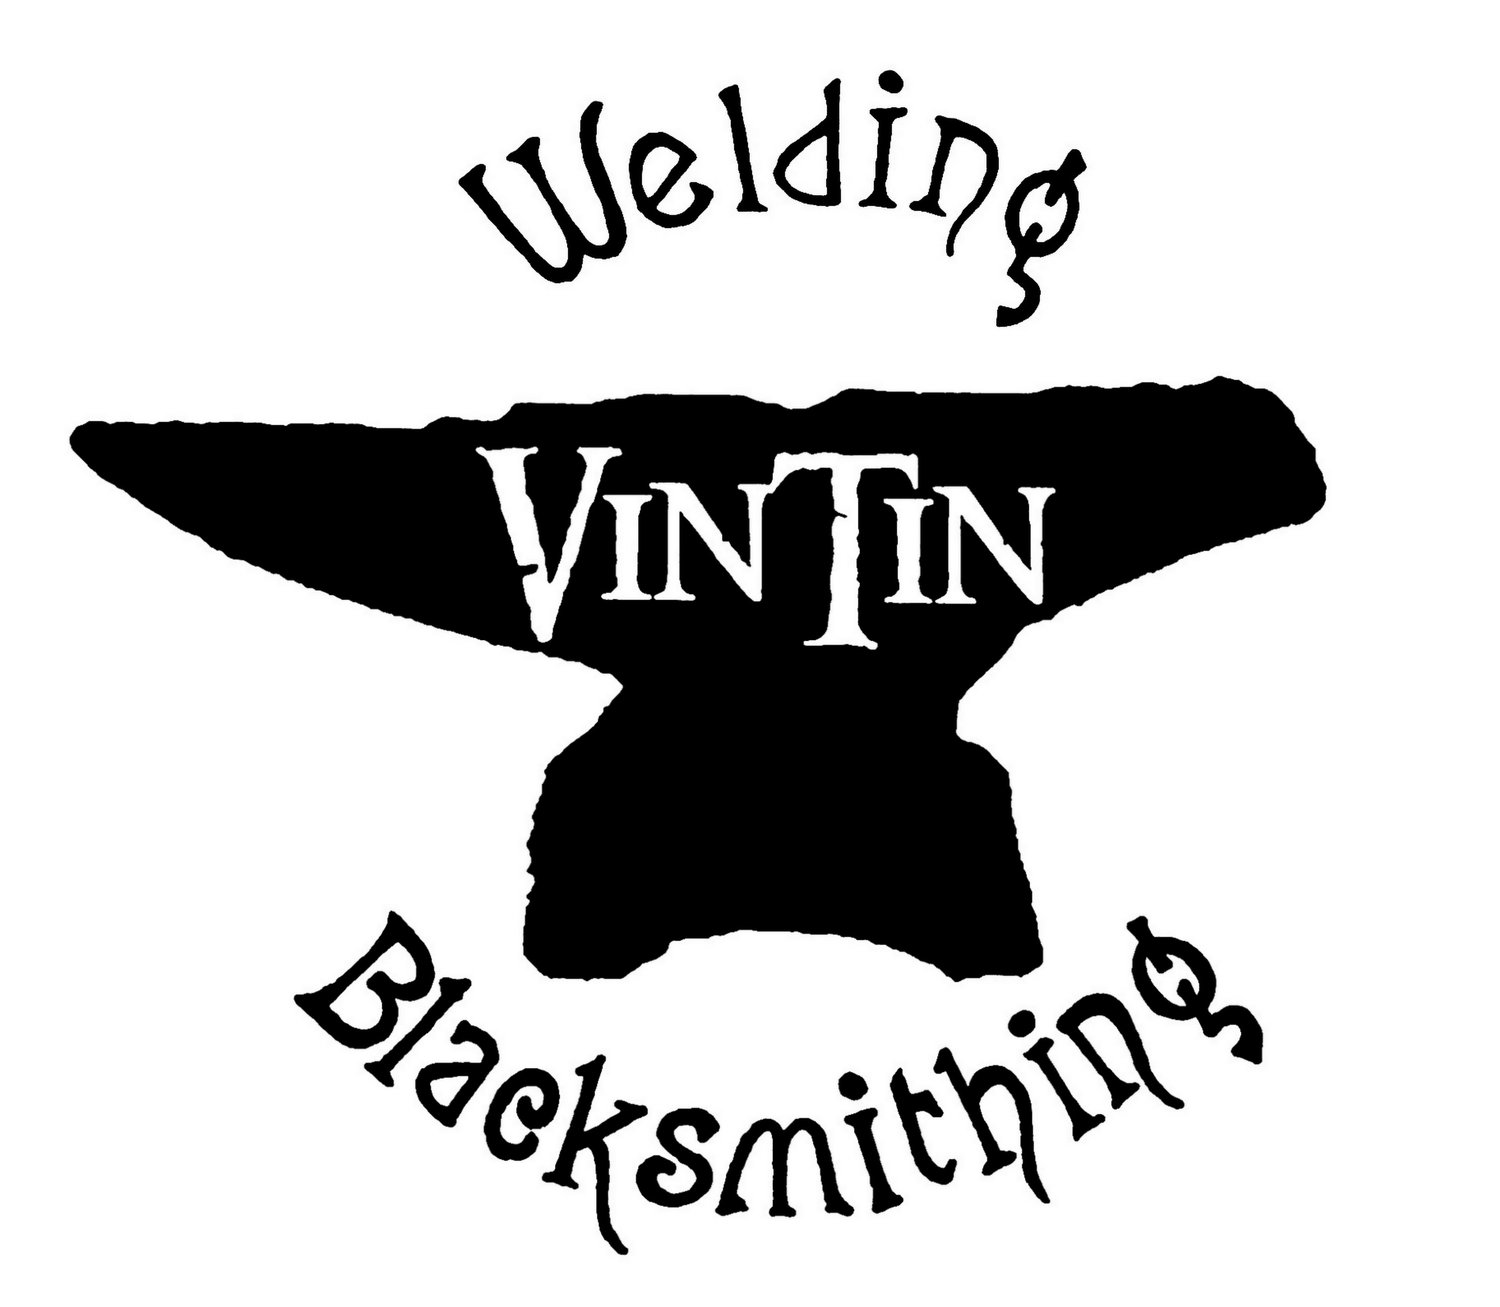 VinTin Welding and Fabricating LLC